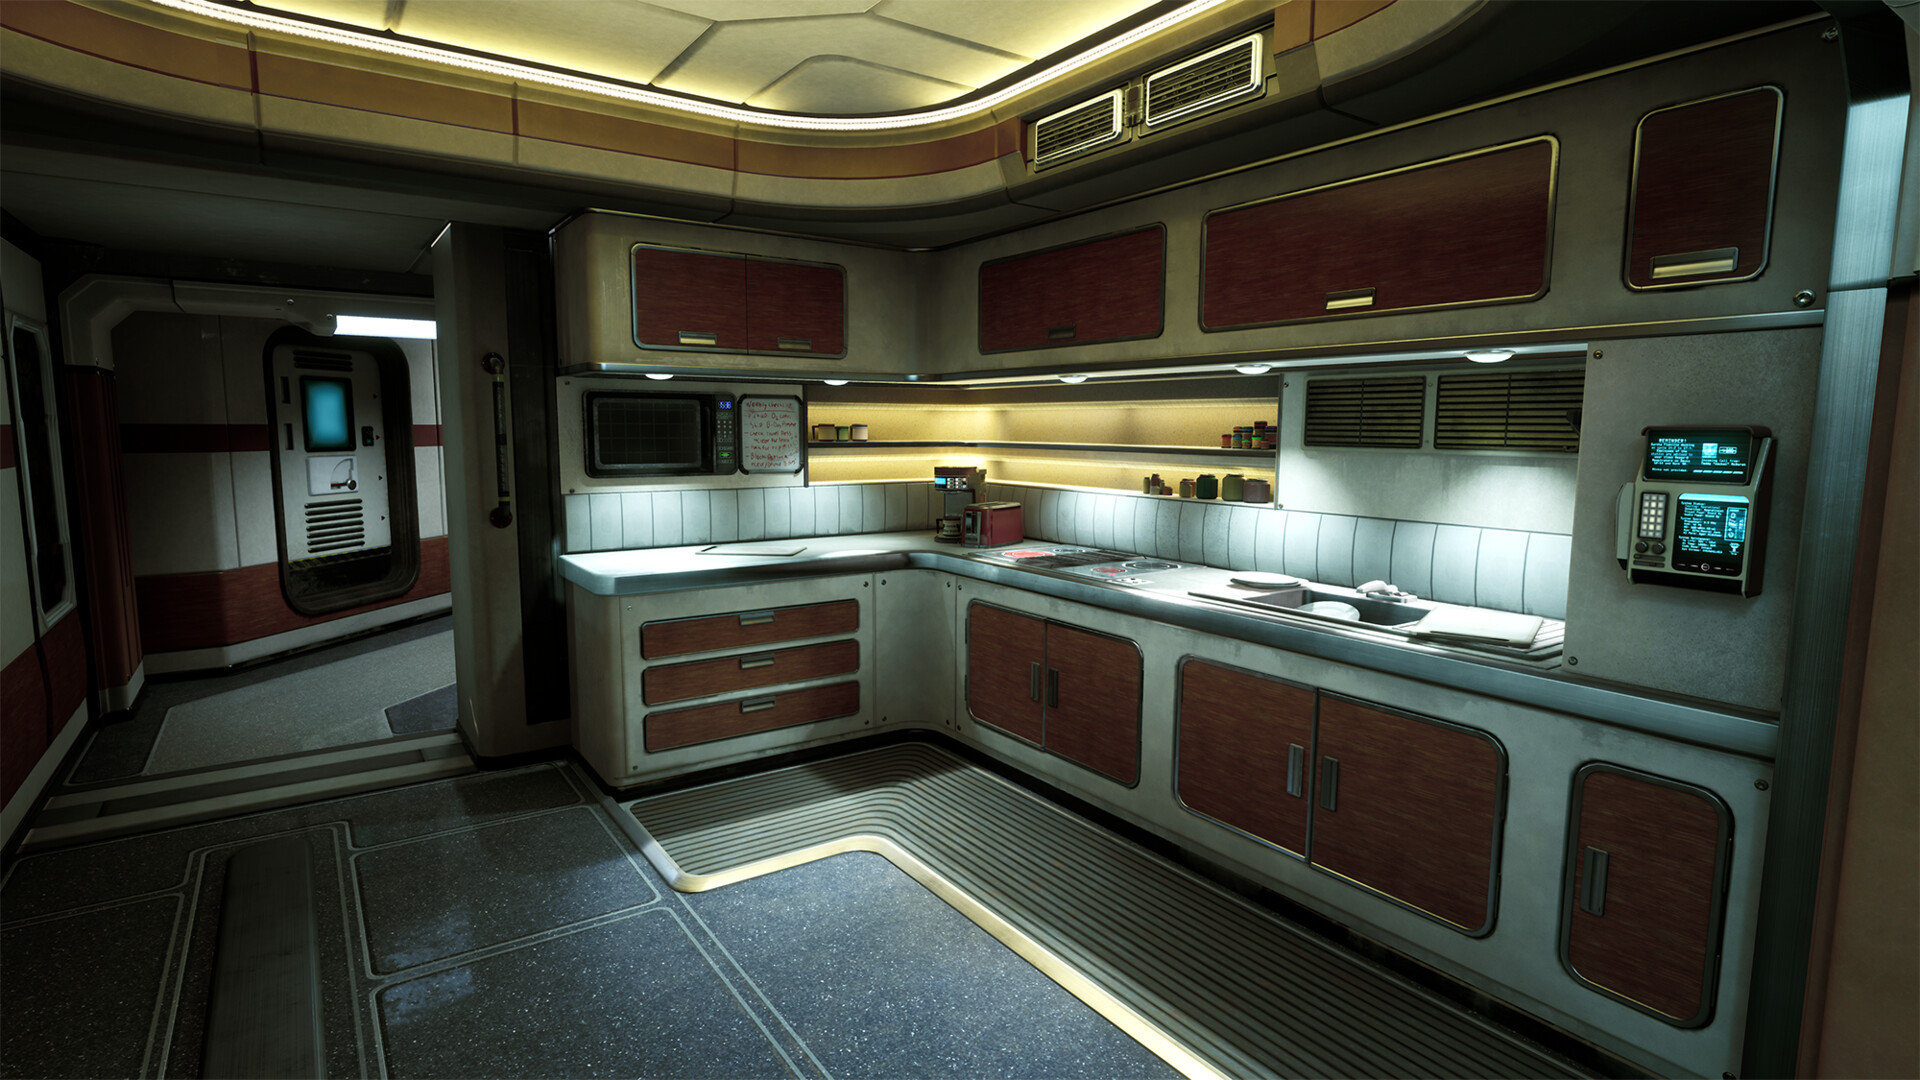 The main shot of the kitchen.